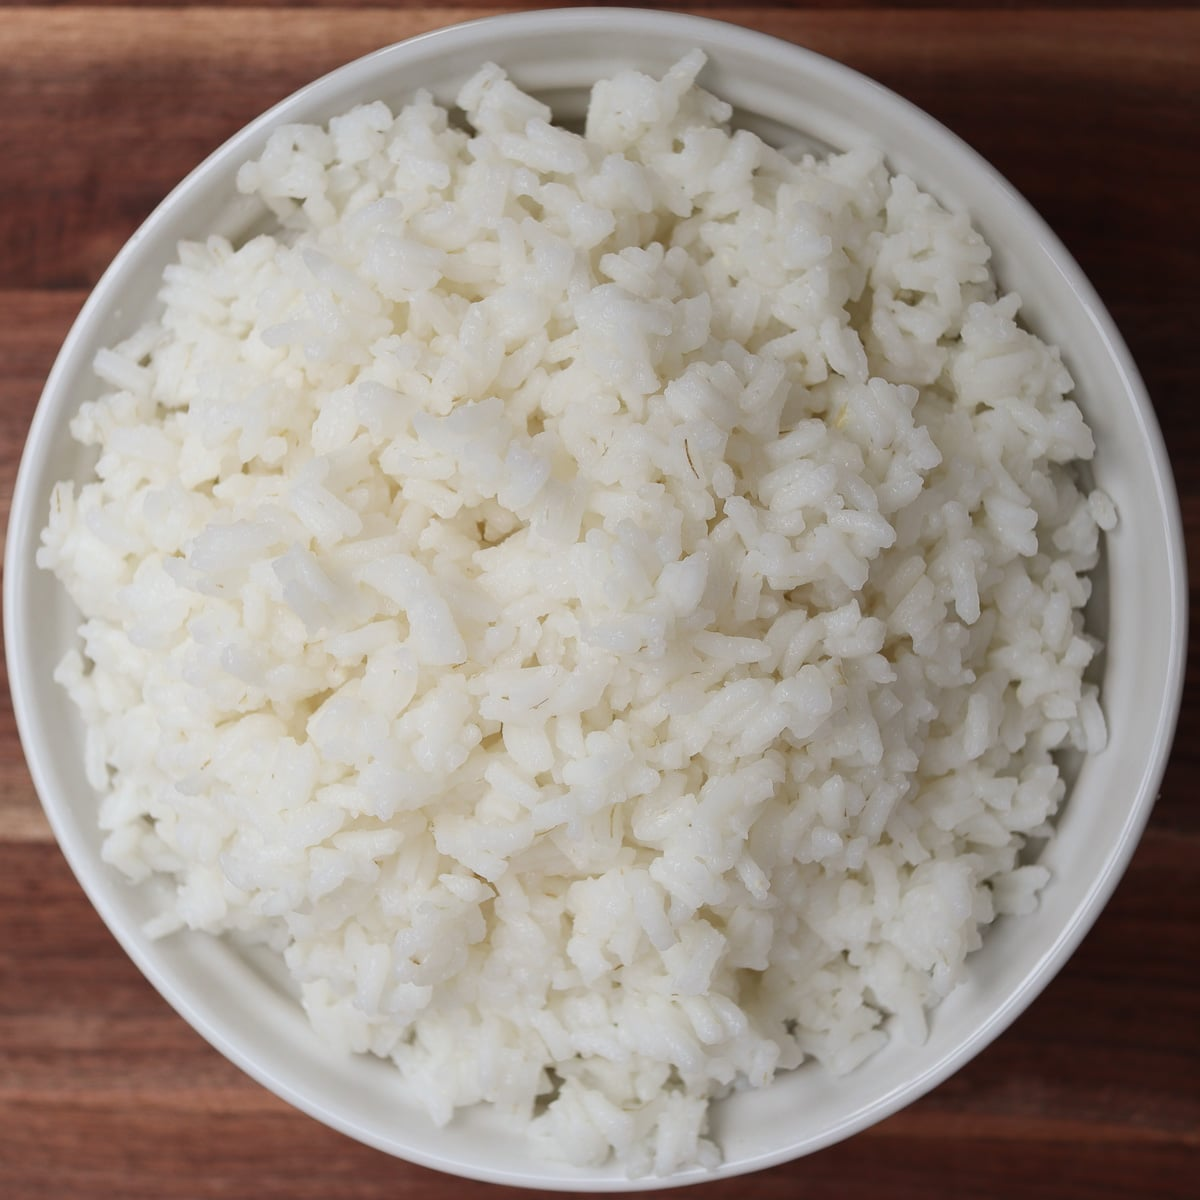 a bowl of cooked whit rice